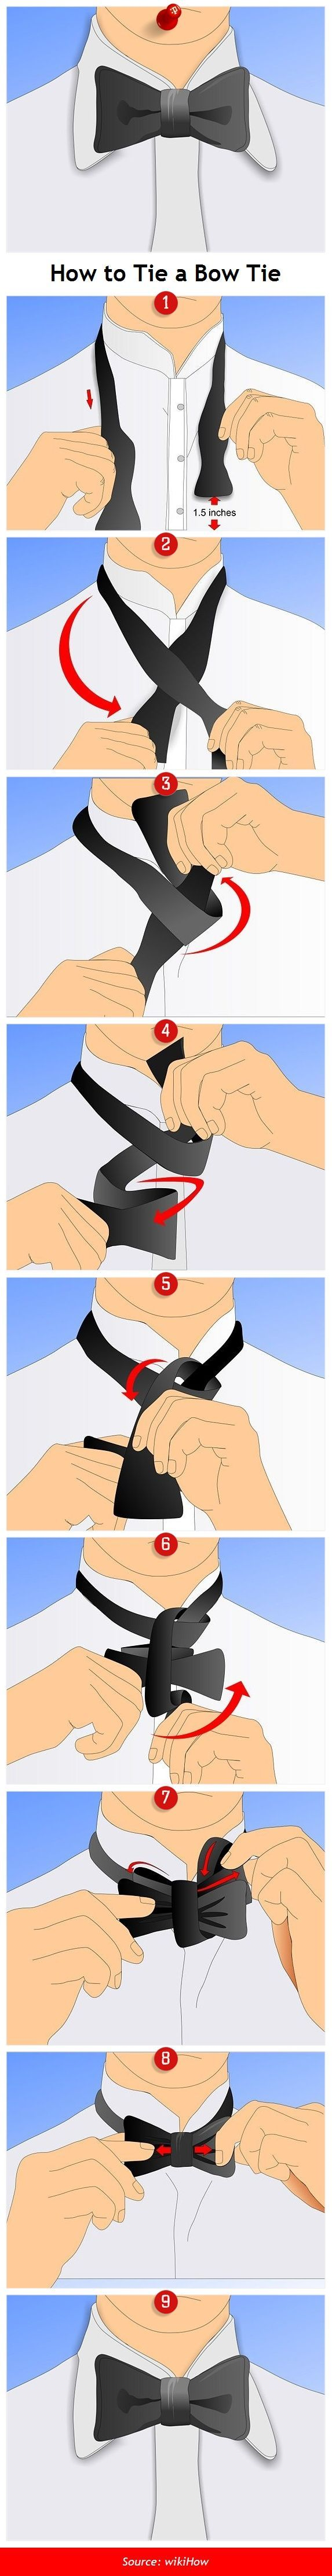 How to Tie a Bow Tie. Not that I'm using bow ties..but still good to know